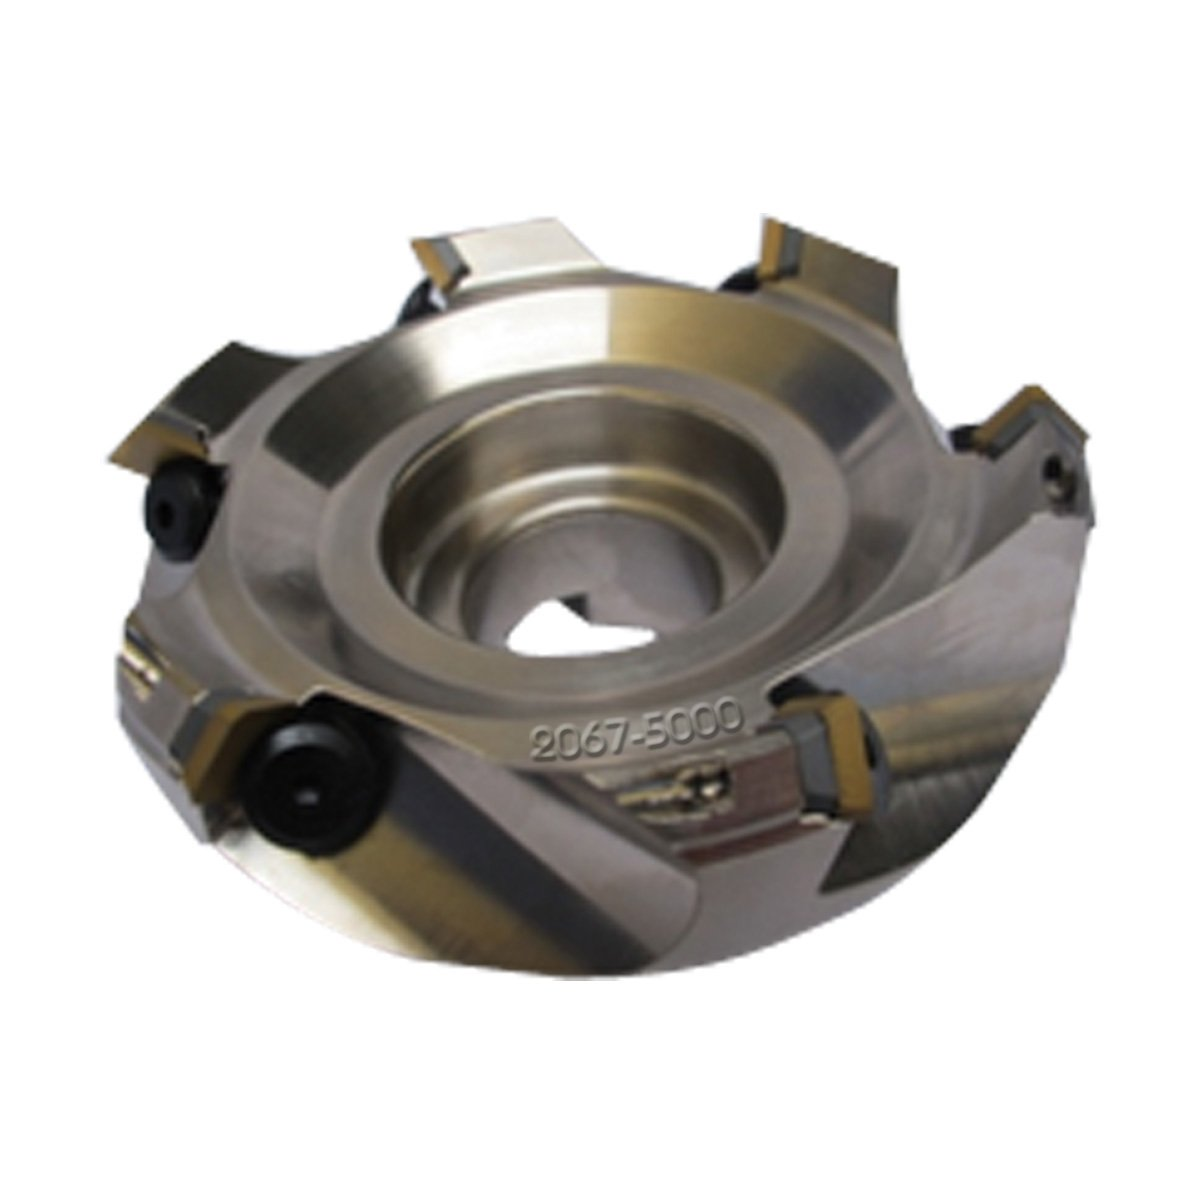 HHIP 2067-5000 5'' x 1-1/2'' Bore 45 Degree SE42 Index able Face Mill, 6 Teeth, 2.48'' OAL